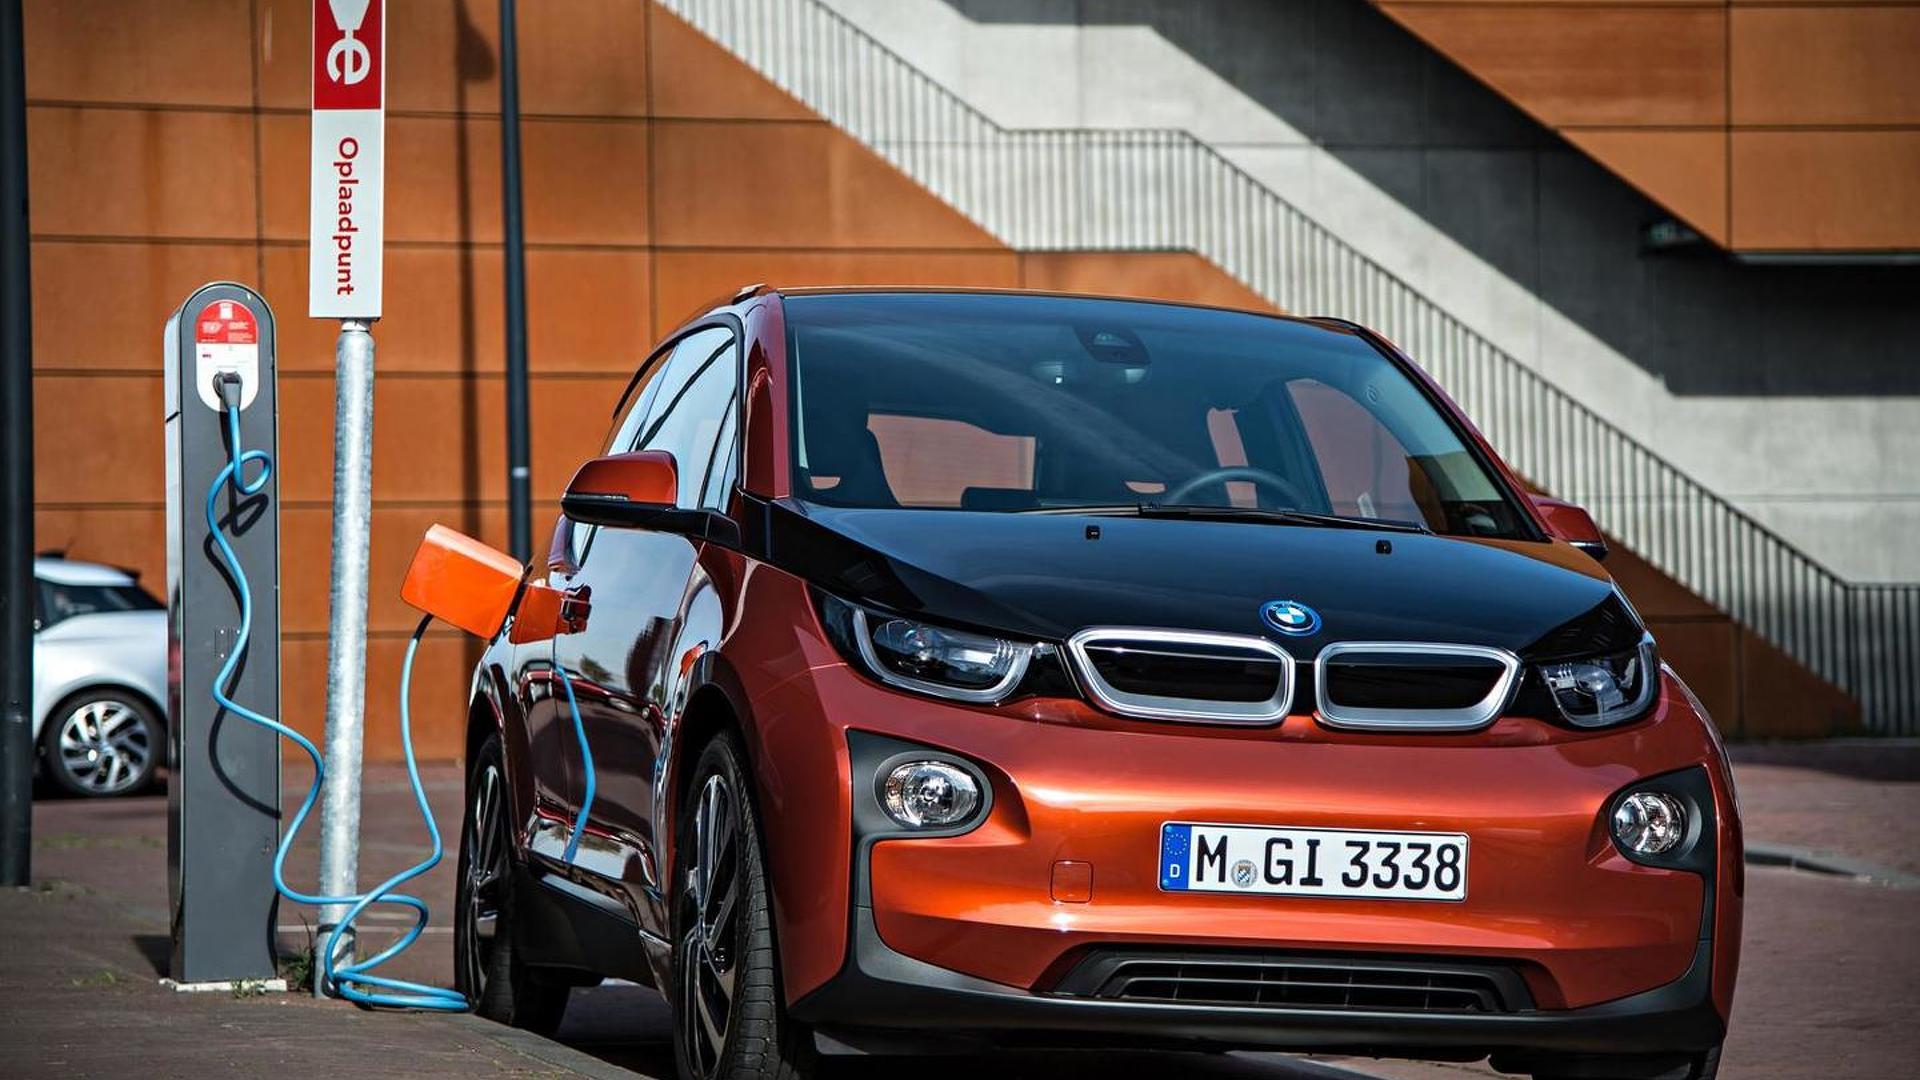 2015 BMW i3 gets $1,075 price hike to $43,350